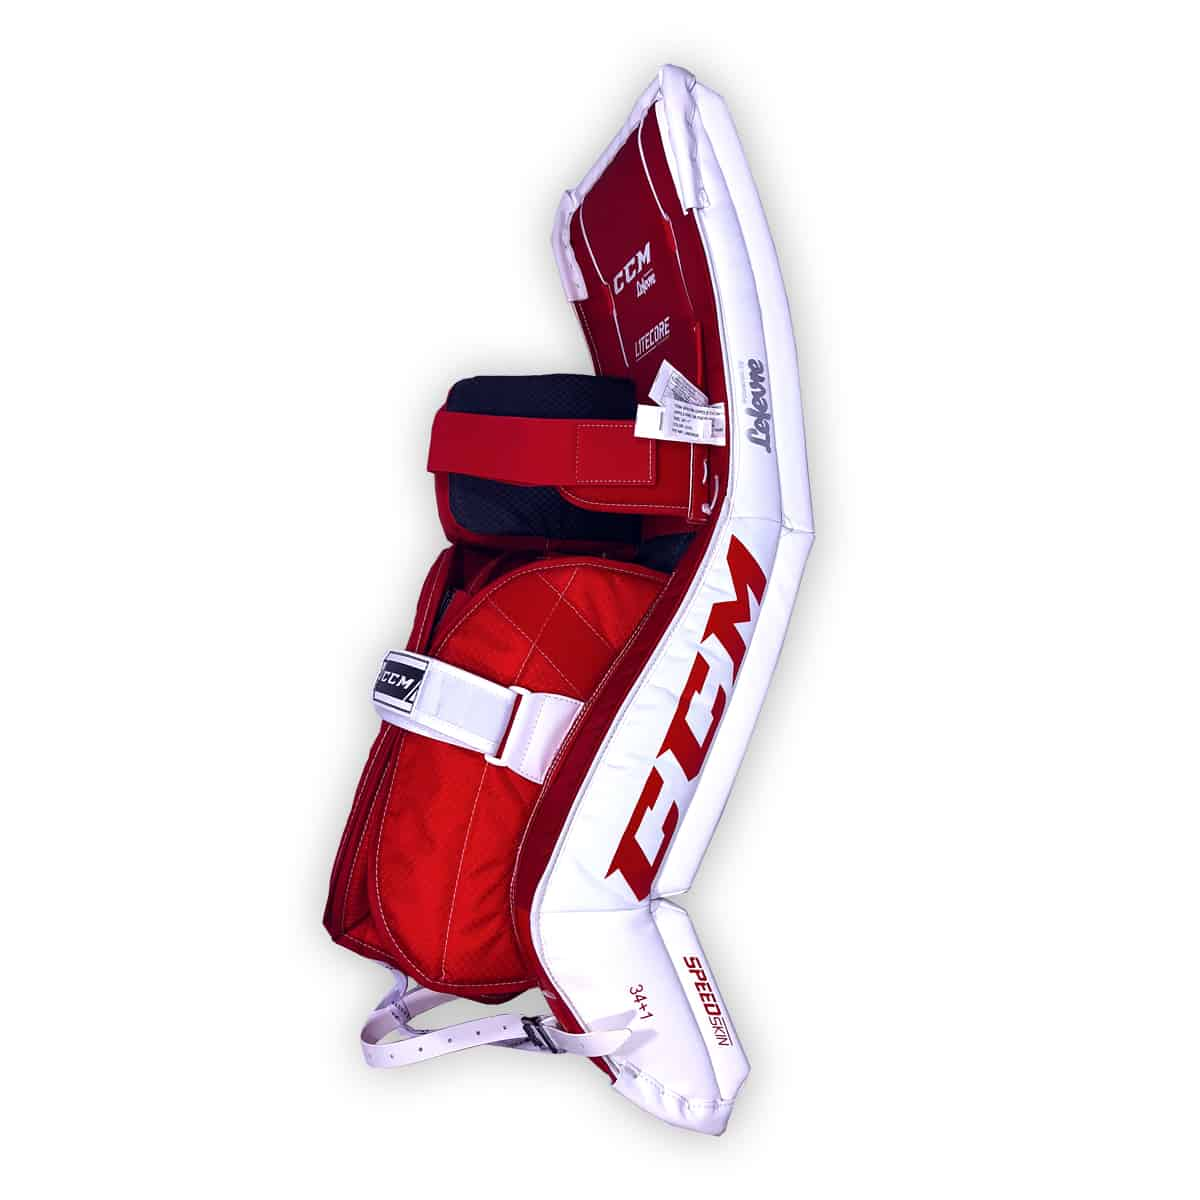 e1e3bb53882 CCM Premier P2.5 Senior Goalie Pads in Chicago colors on back